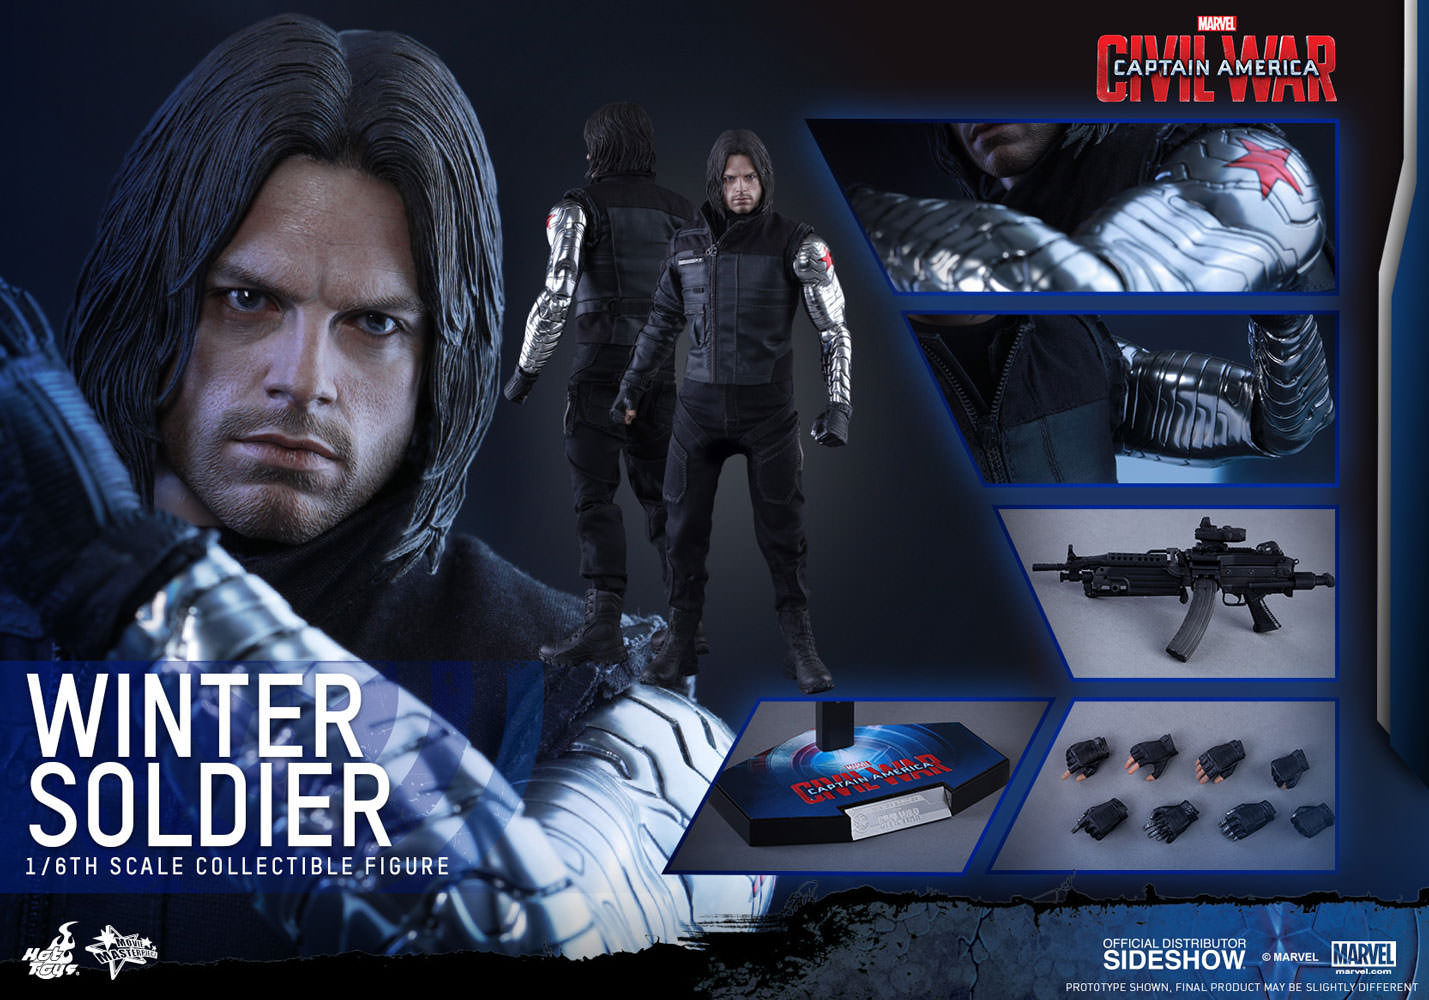 https://www.sideshowtoy.com/assets/products/902656-winter-soldier/lg/marvel-captain-america-civil-war-winter-soldier-sixth-scale-hot-toys-902656-16.jpg